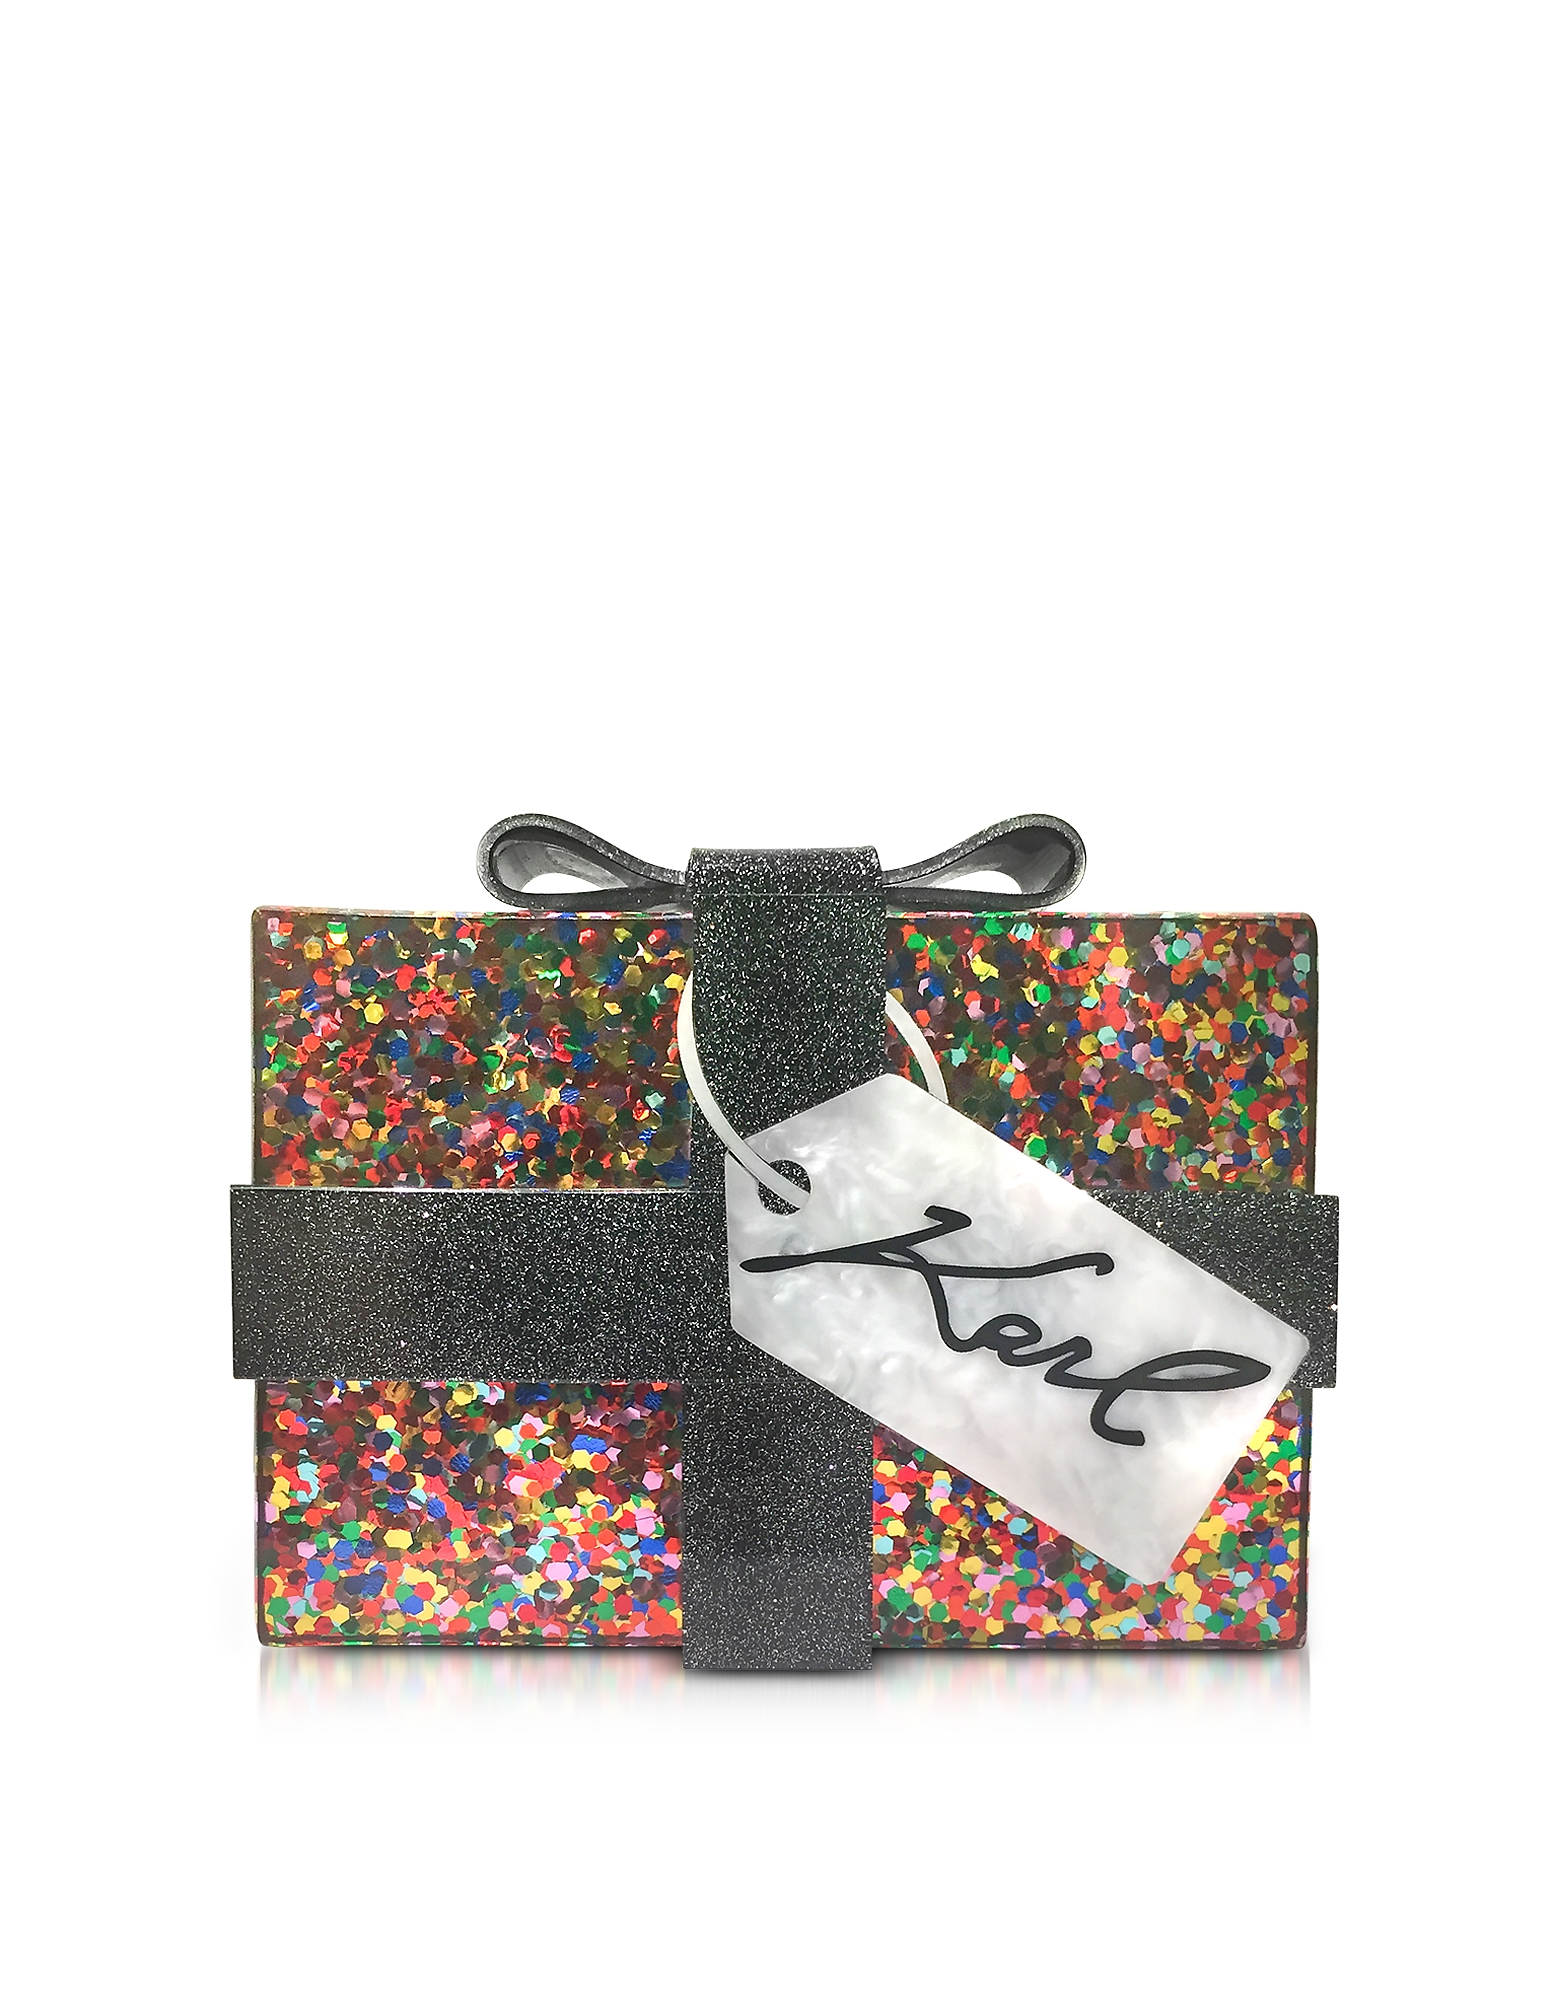 Karl Lagerfeld Handbags, K/Karl Kado Box Clutch